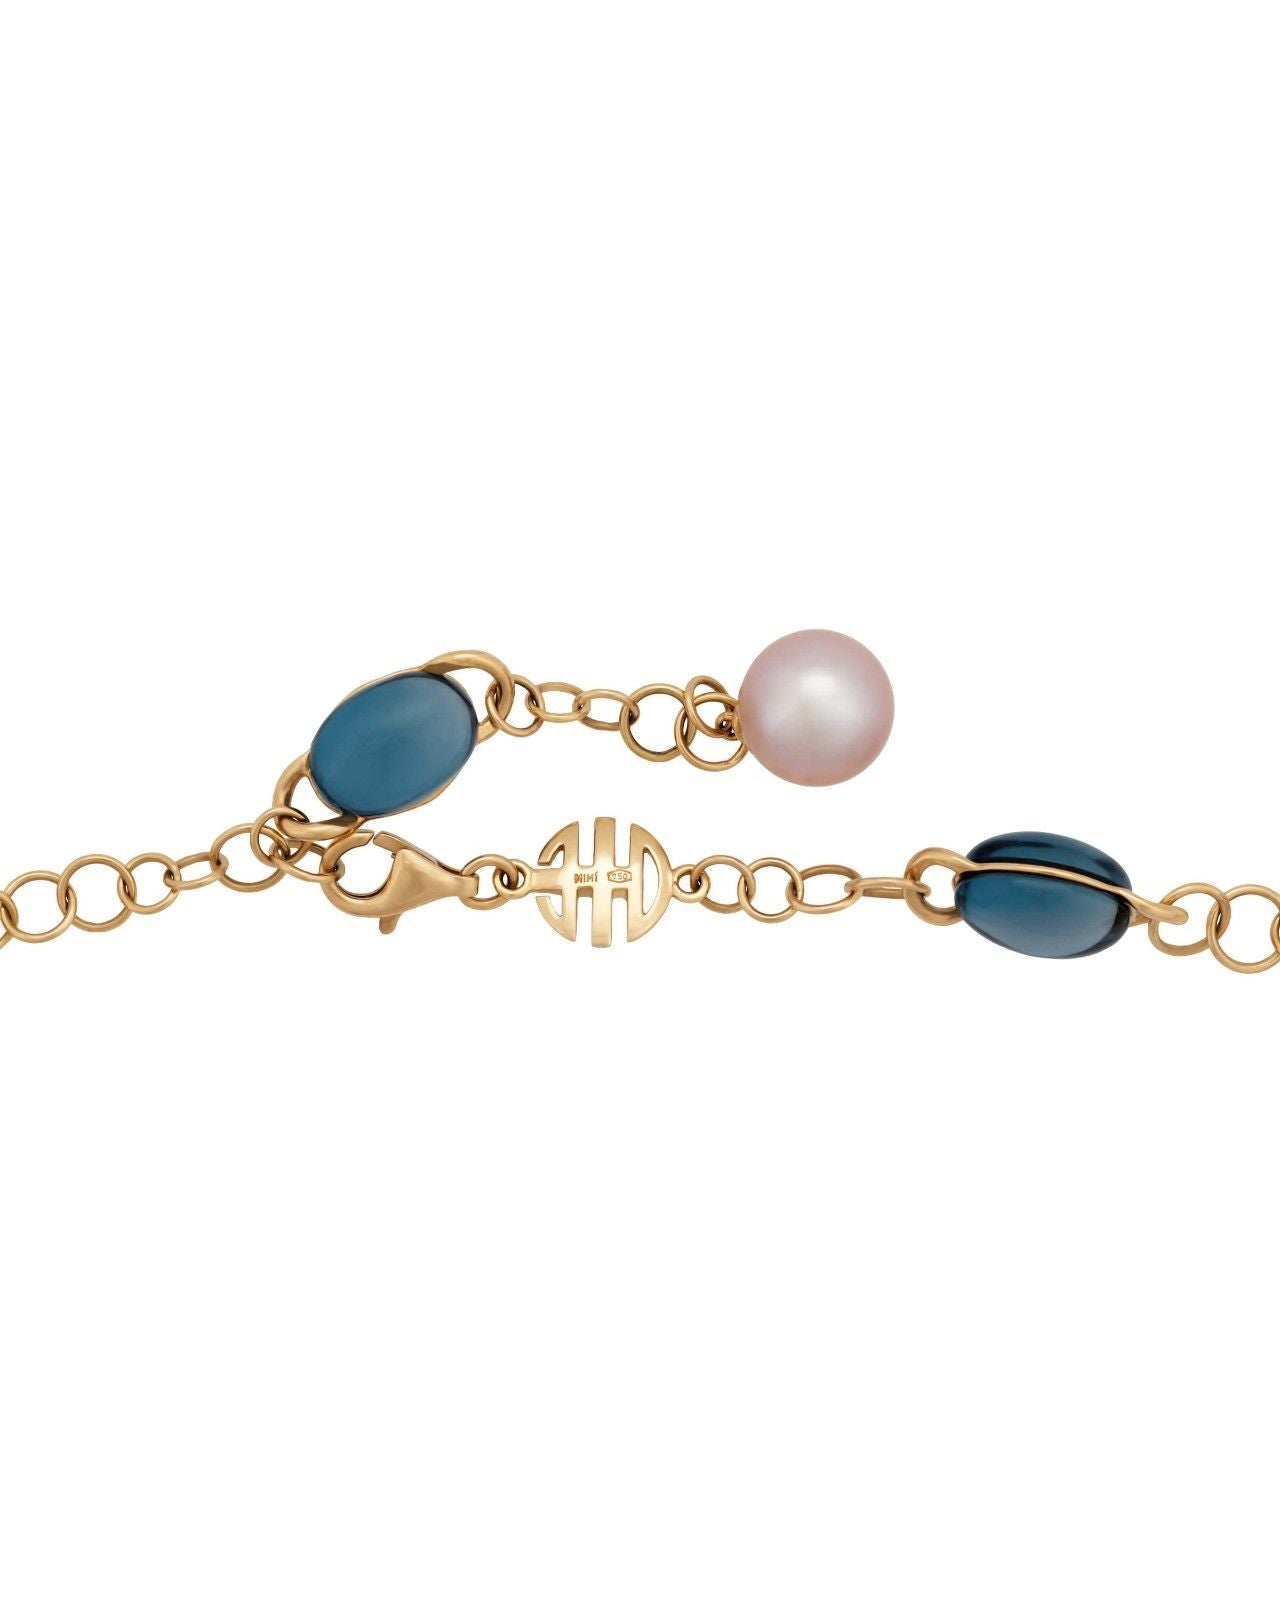 Mimi Milano Necklace In 18K Rose Gold, Blue Topaz Violet Pearls C266R3T